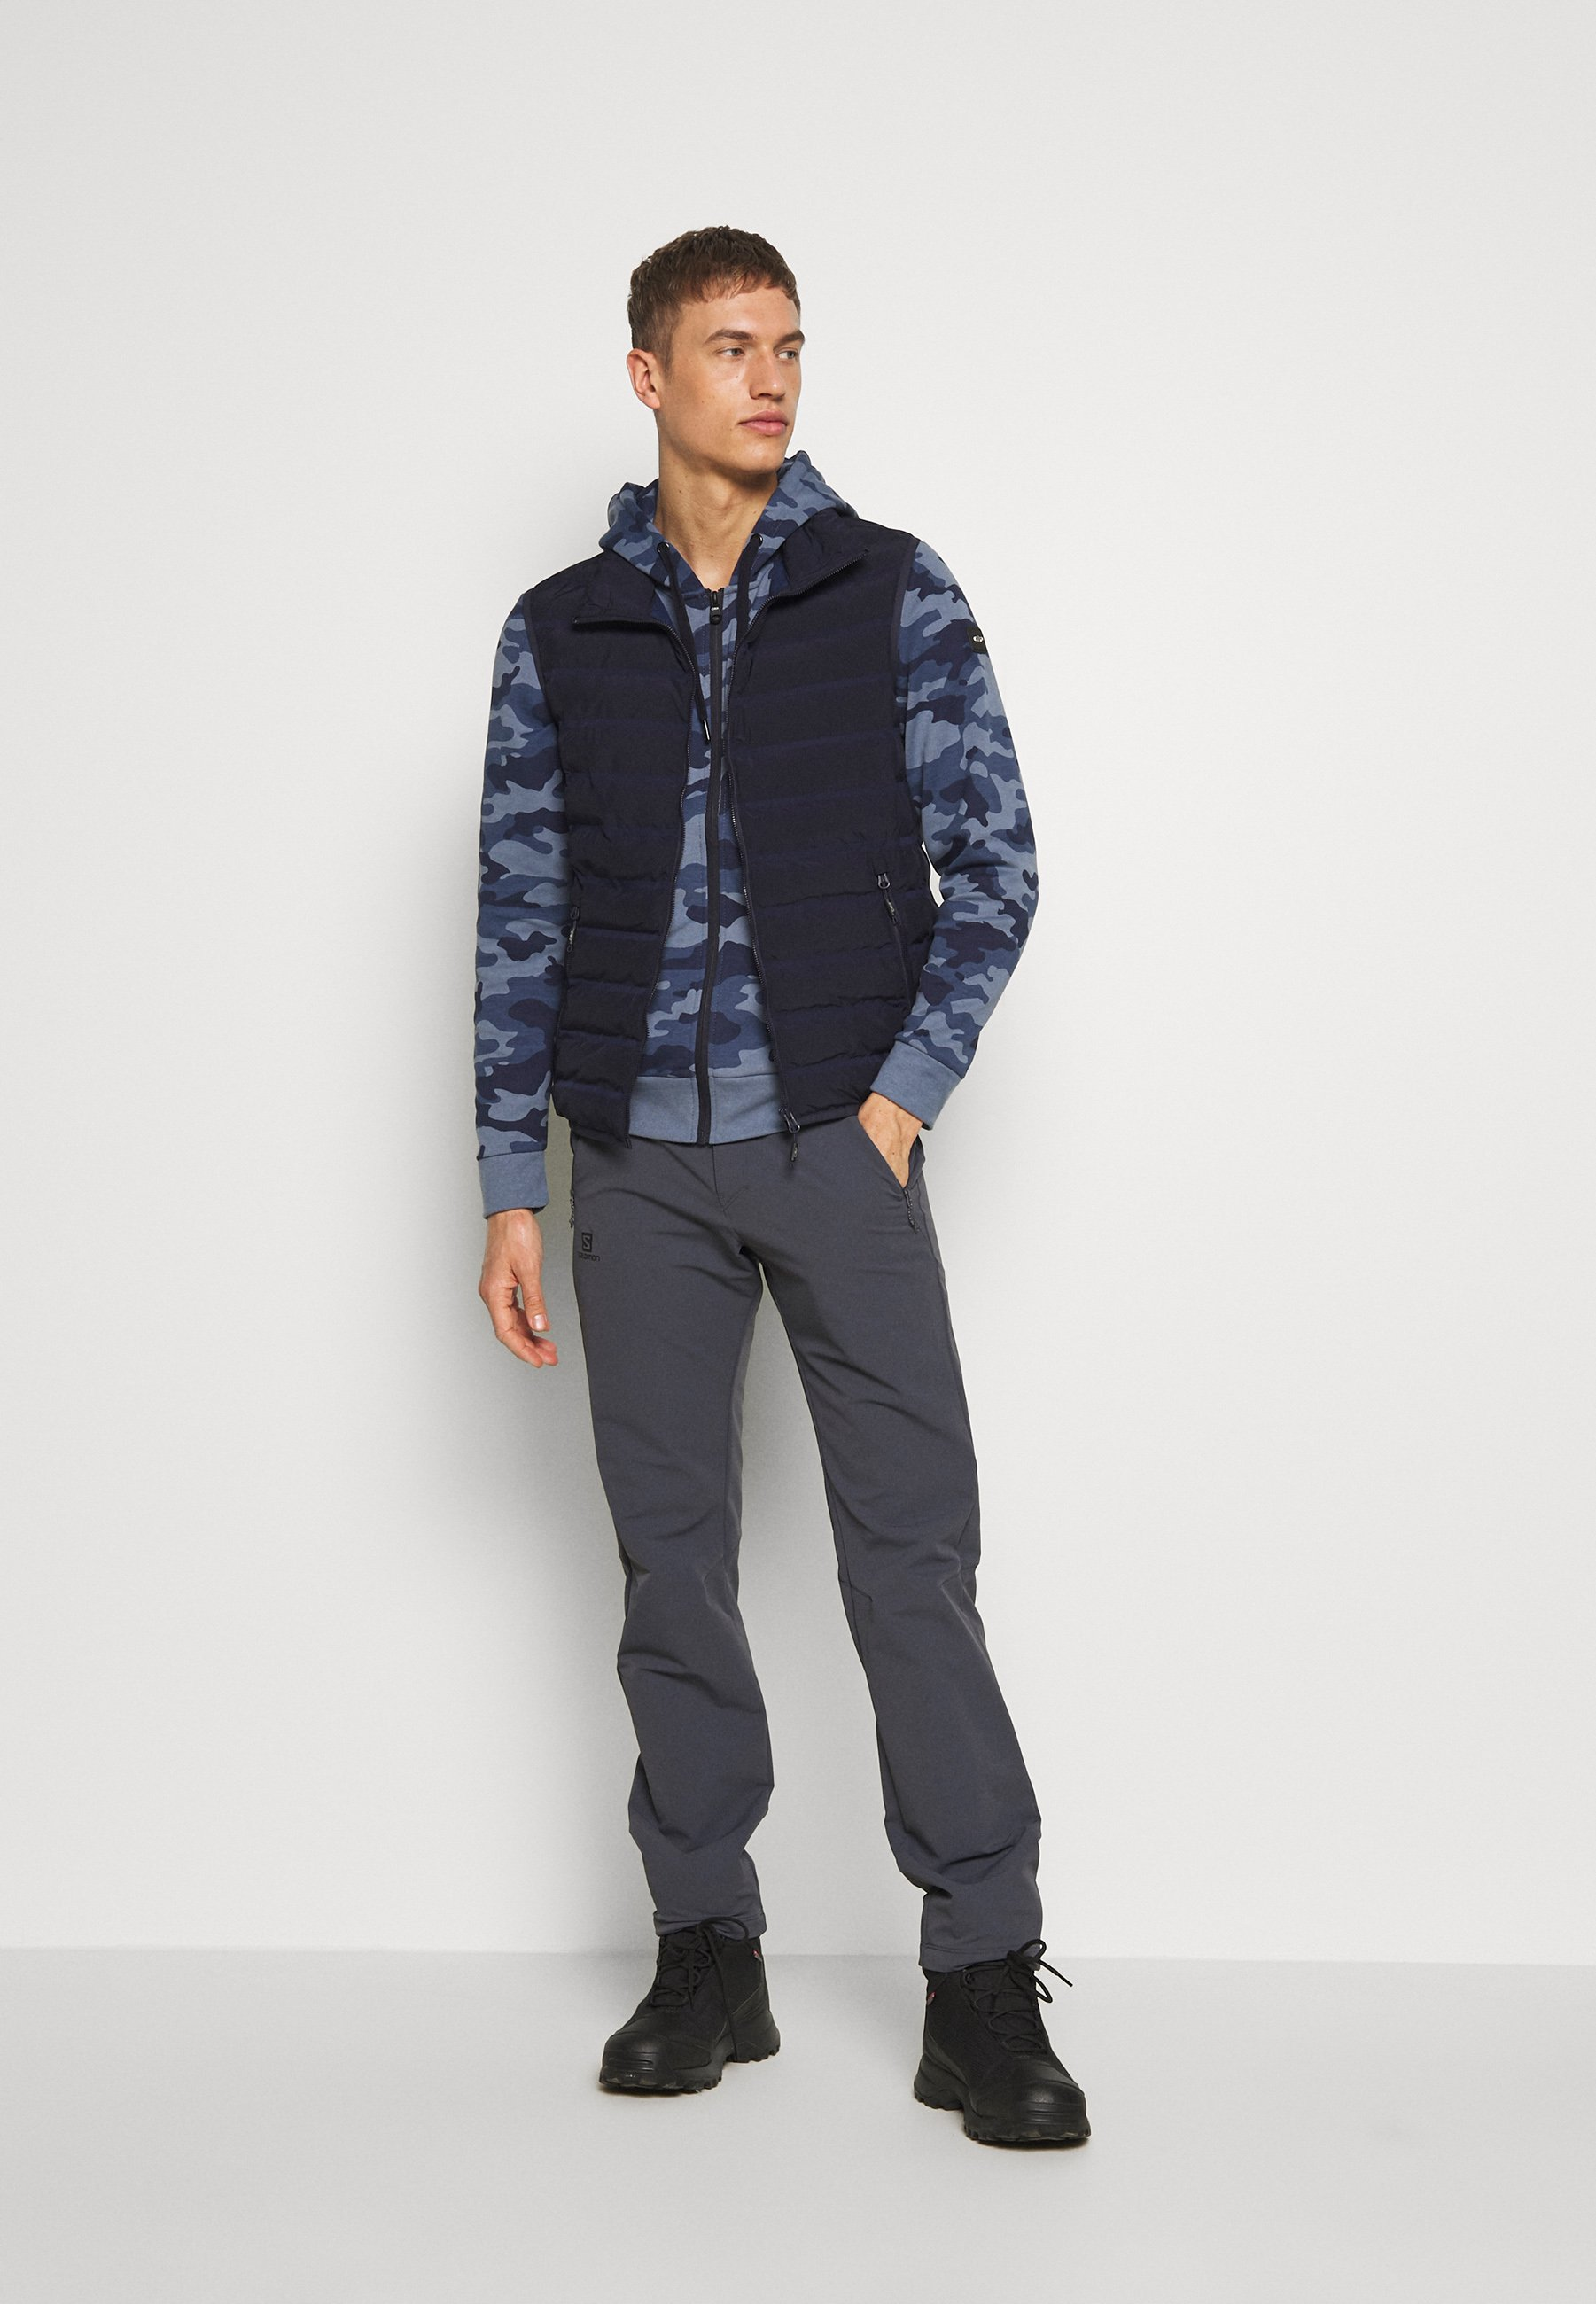 Cmp Man Jacket Fix Hood - Sweatshirt Avio/dark Blue